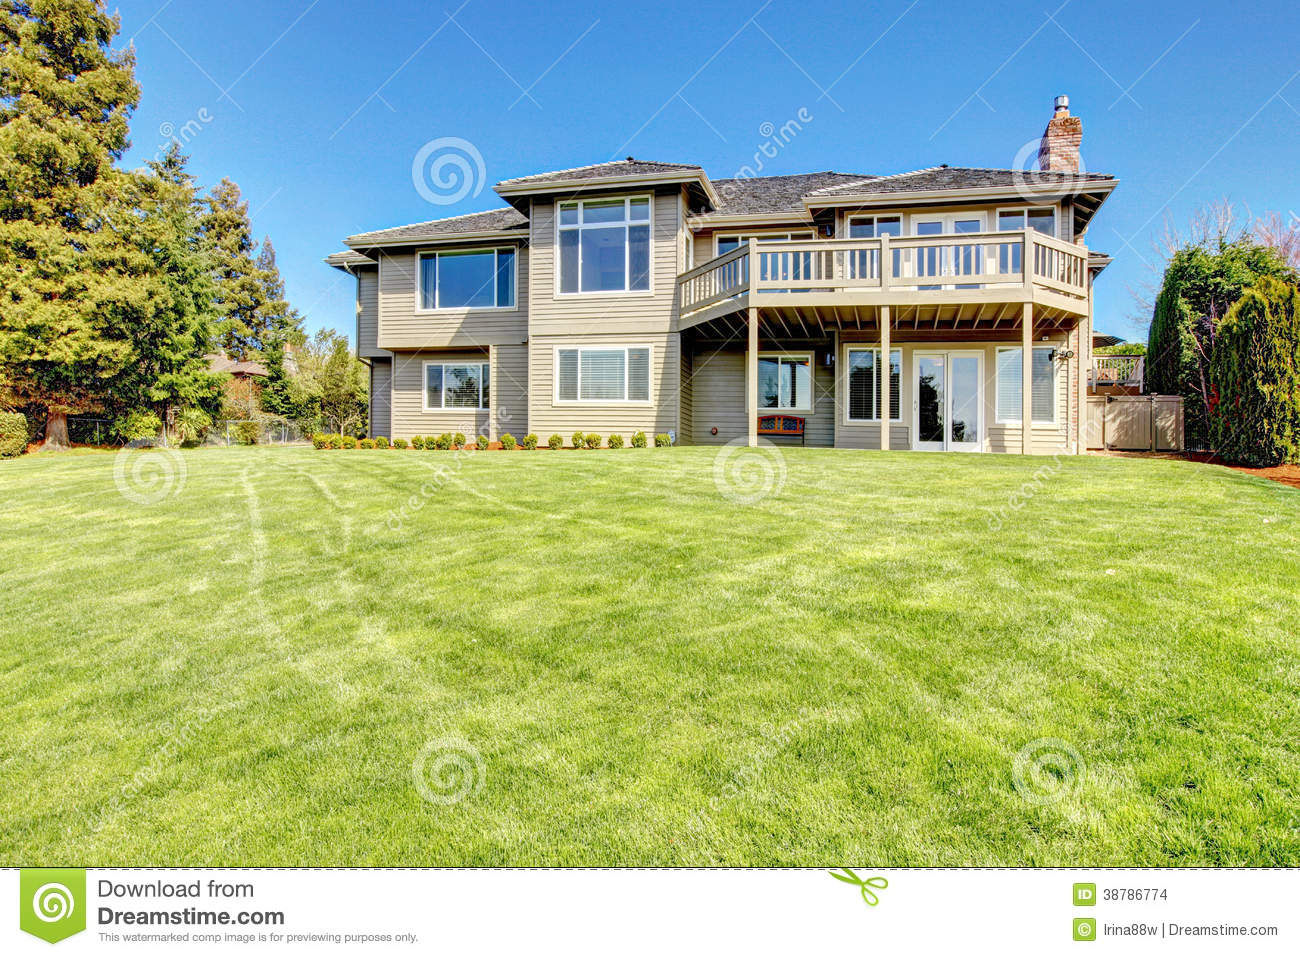 Beautiful Siding House View From Backyard Stock Photo